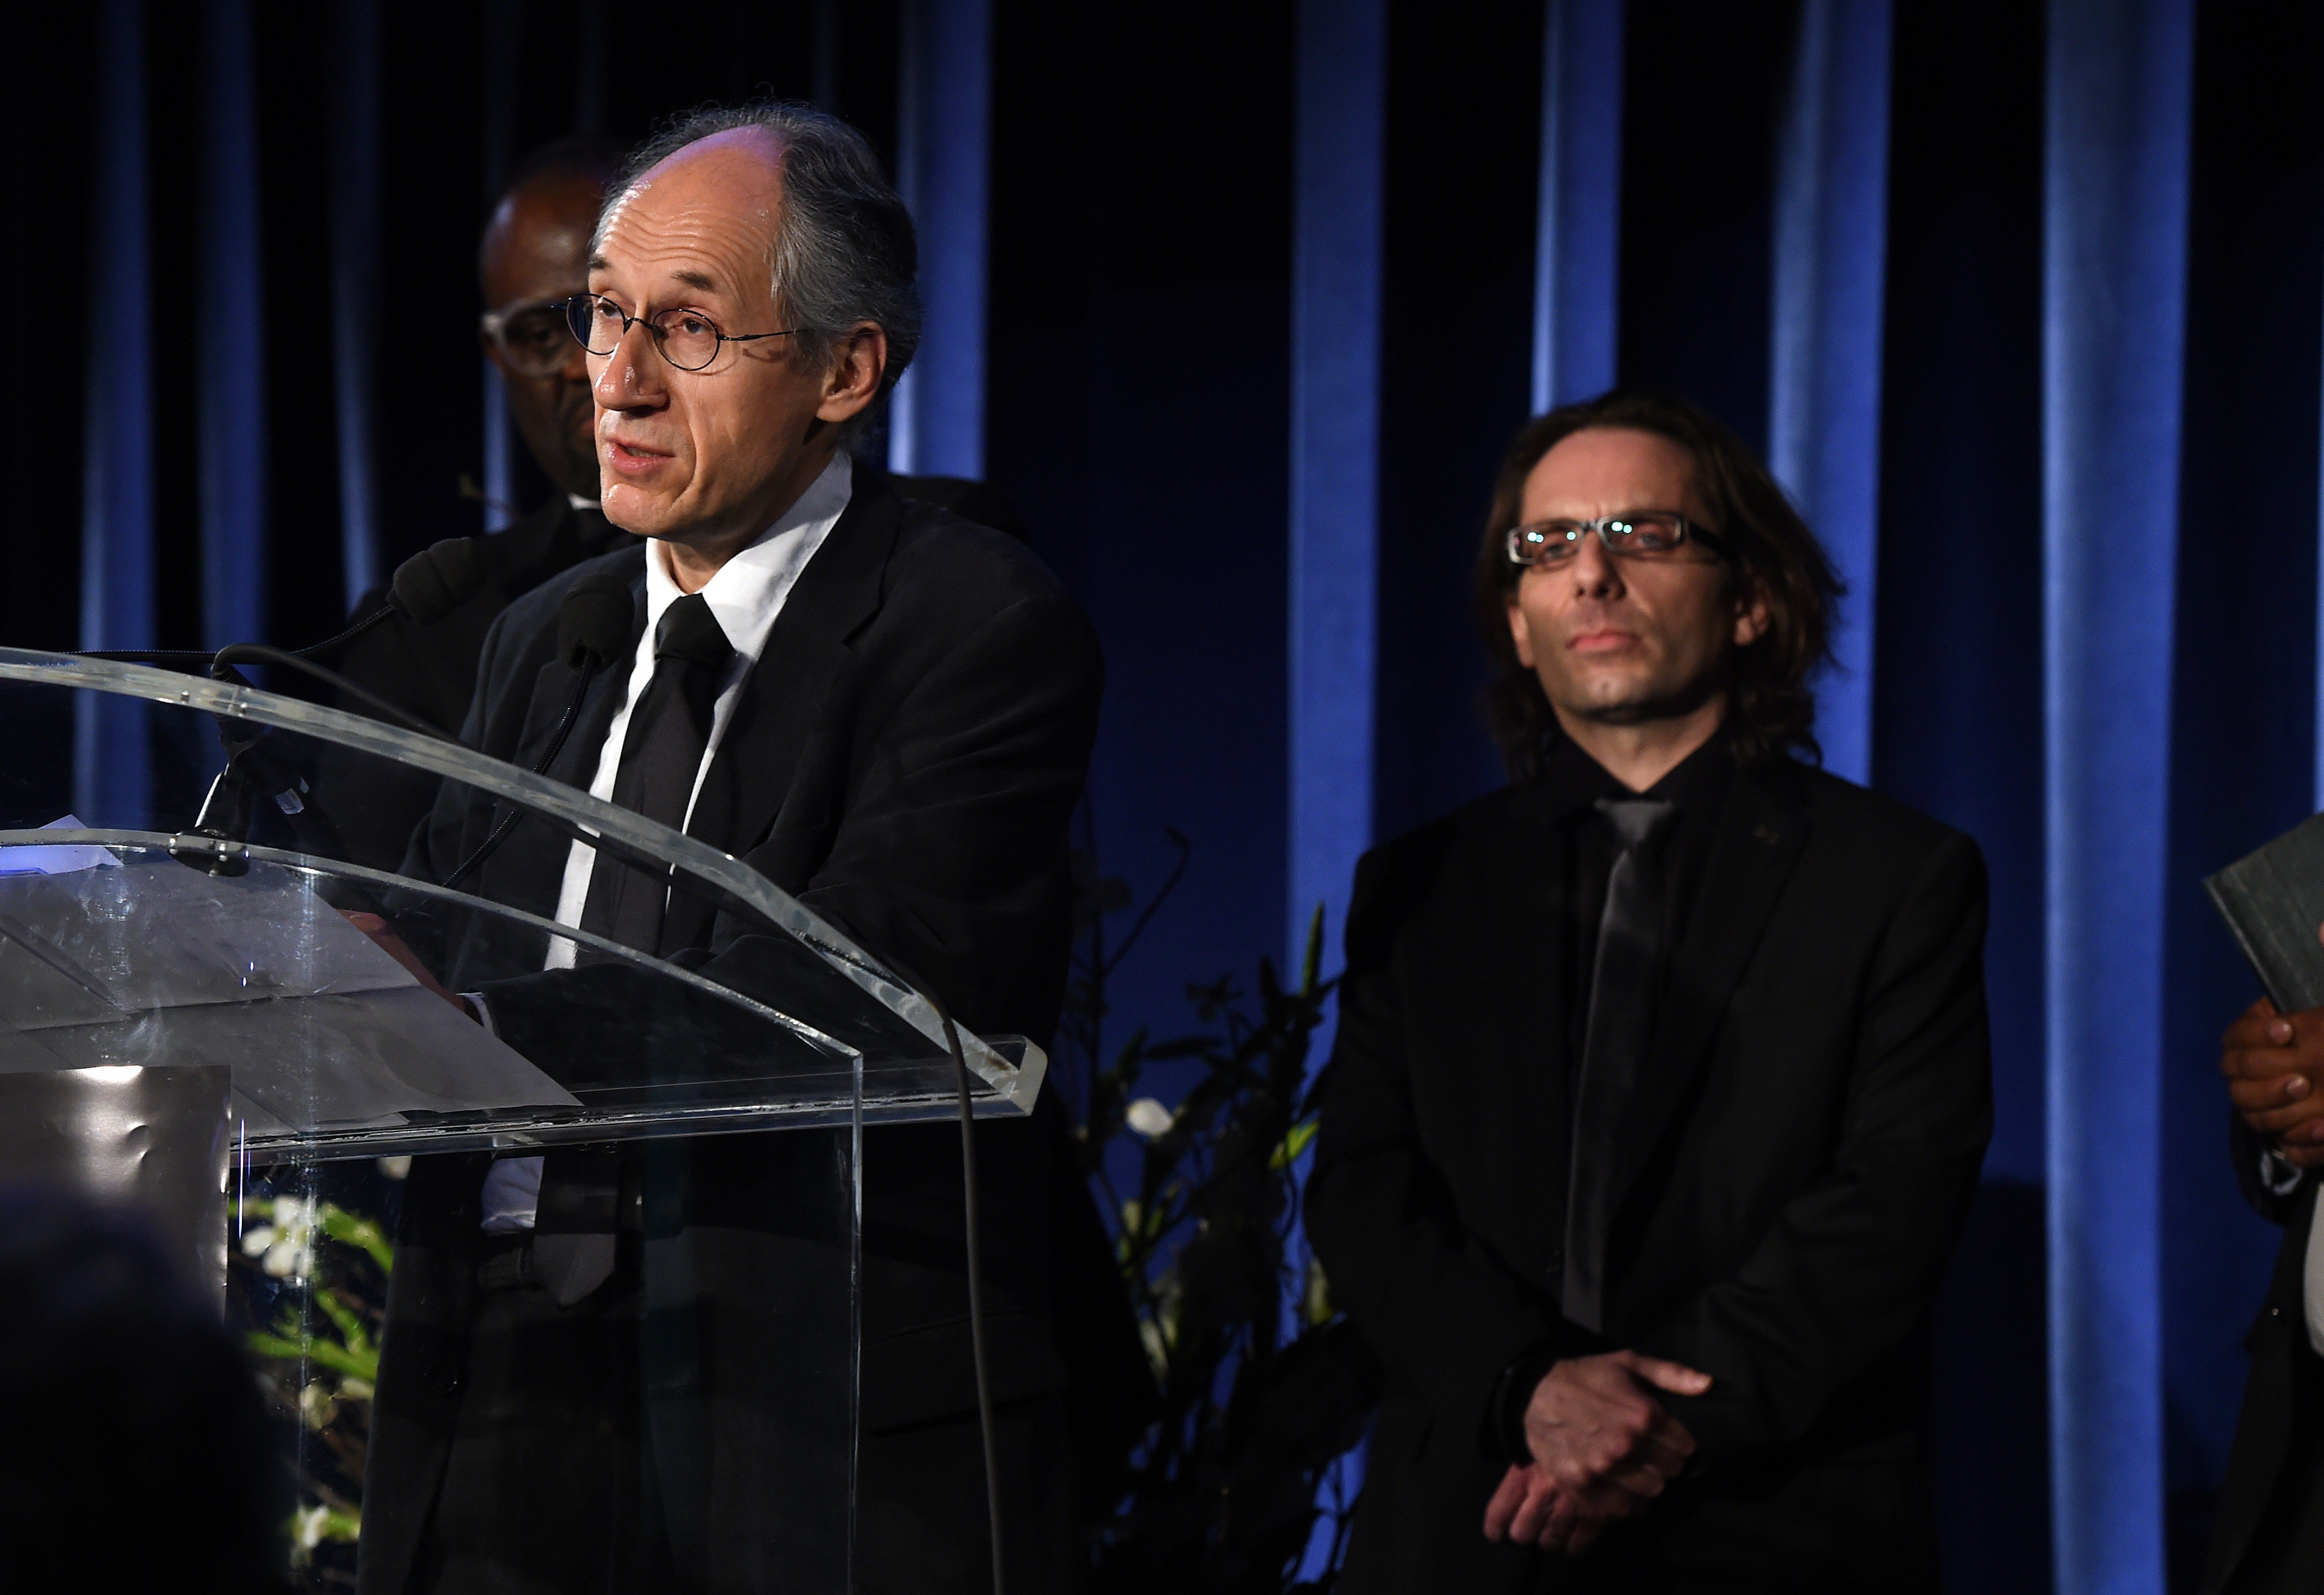 Gerard Biard, left, editor-in-chief of the Paris-based satirical weekly Charlie Hebdo, speaks before critic Jean-Baptiste Thoret (R) during the annual PEN American Center Literary Gala May 5, 2015 at the American Museum of Natural History in New York